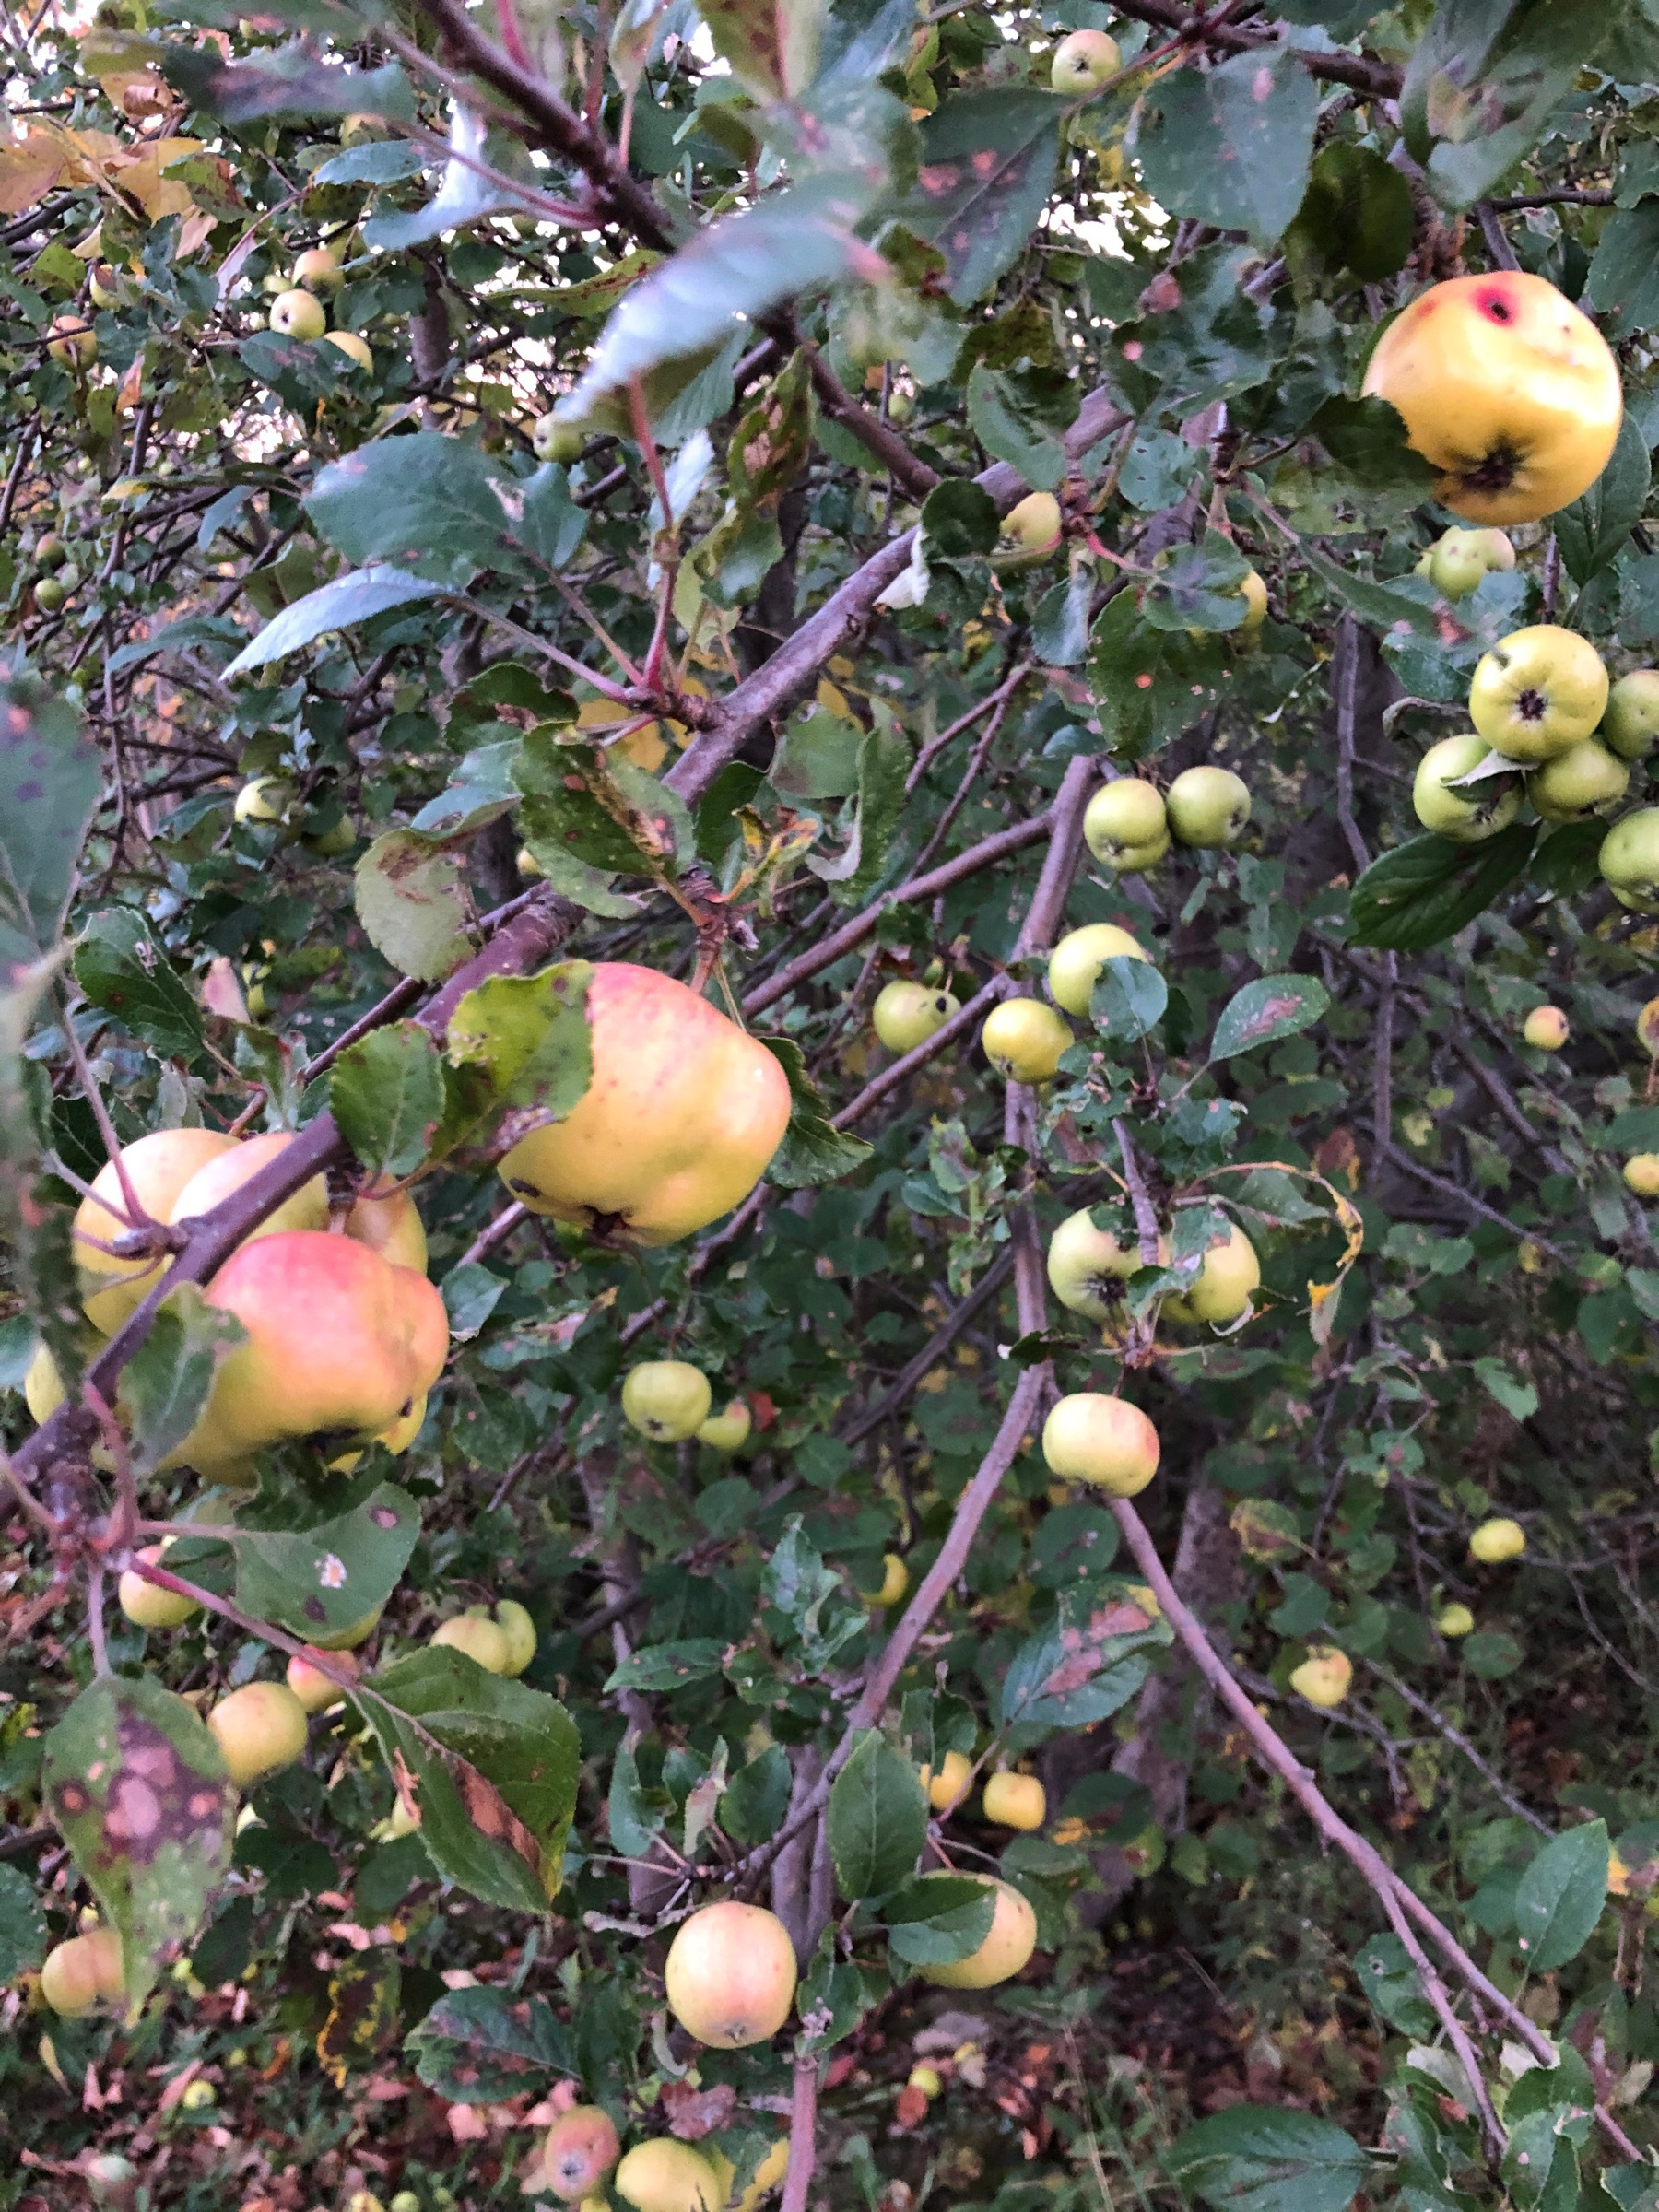 apple tree loaded with small yellow and red apples